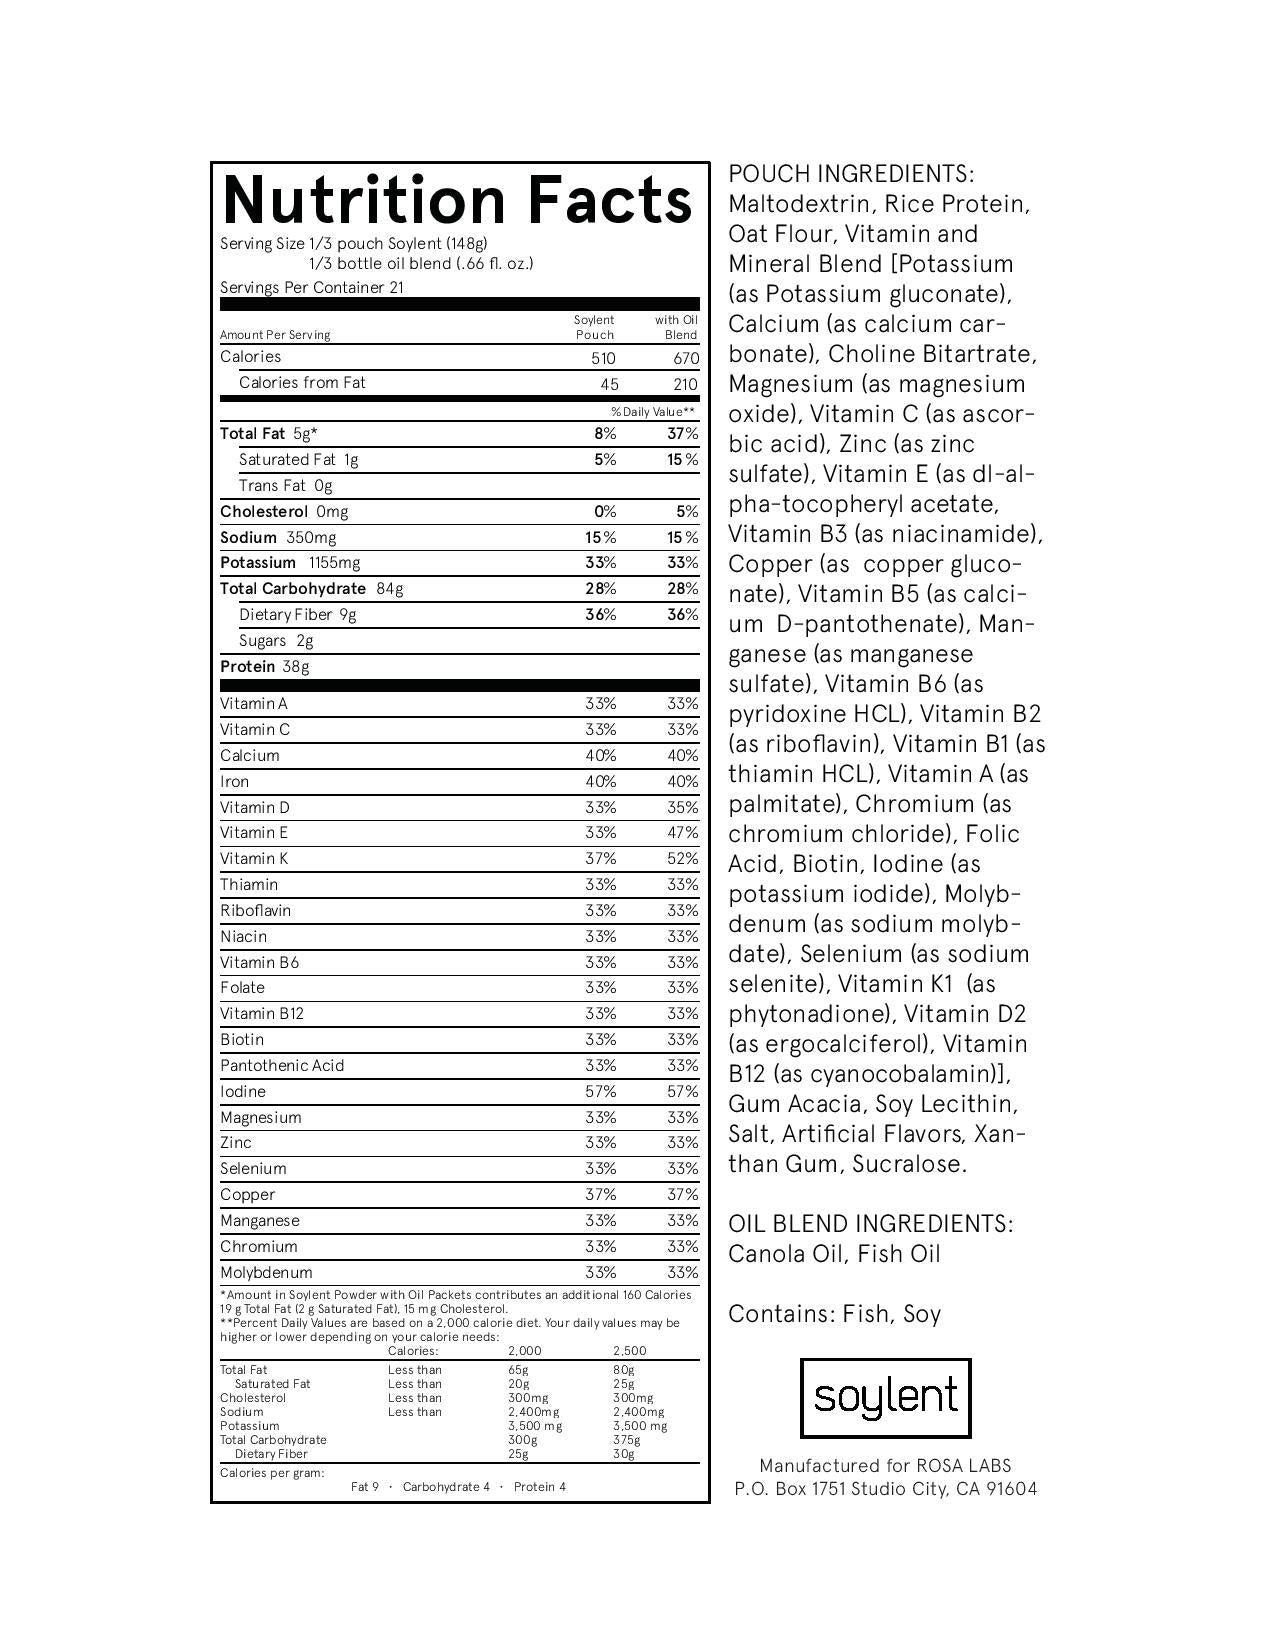 Soylent (meal replacement)